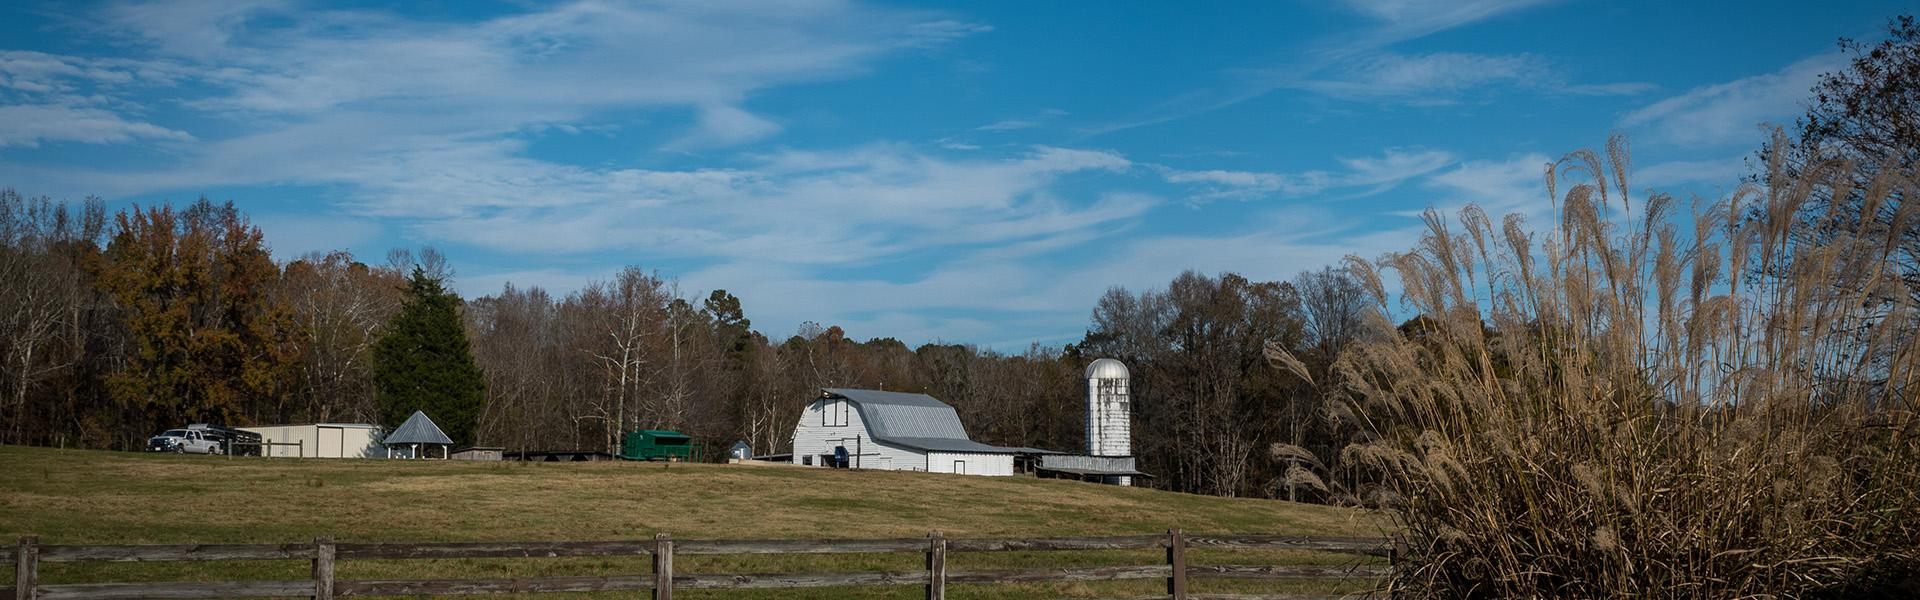 Farm Insurance in Asheville, Gastonia, Marion, Morganton, Old Fort, and Spruce Pine, NC